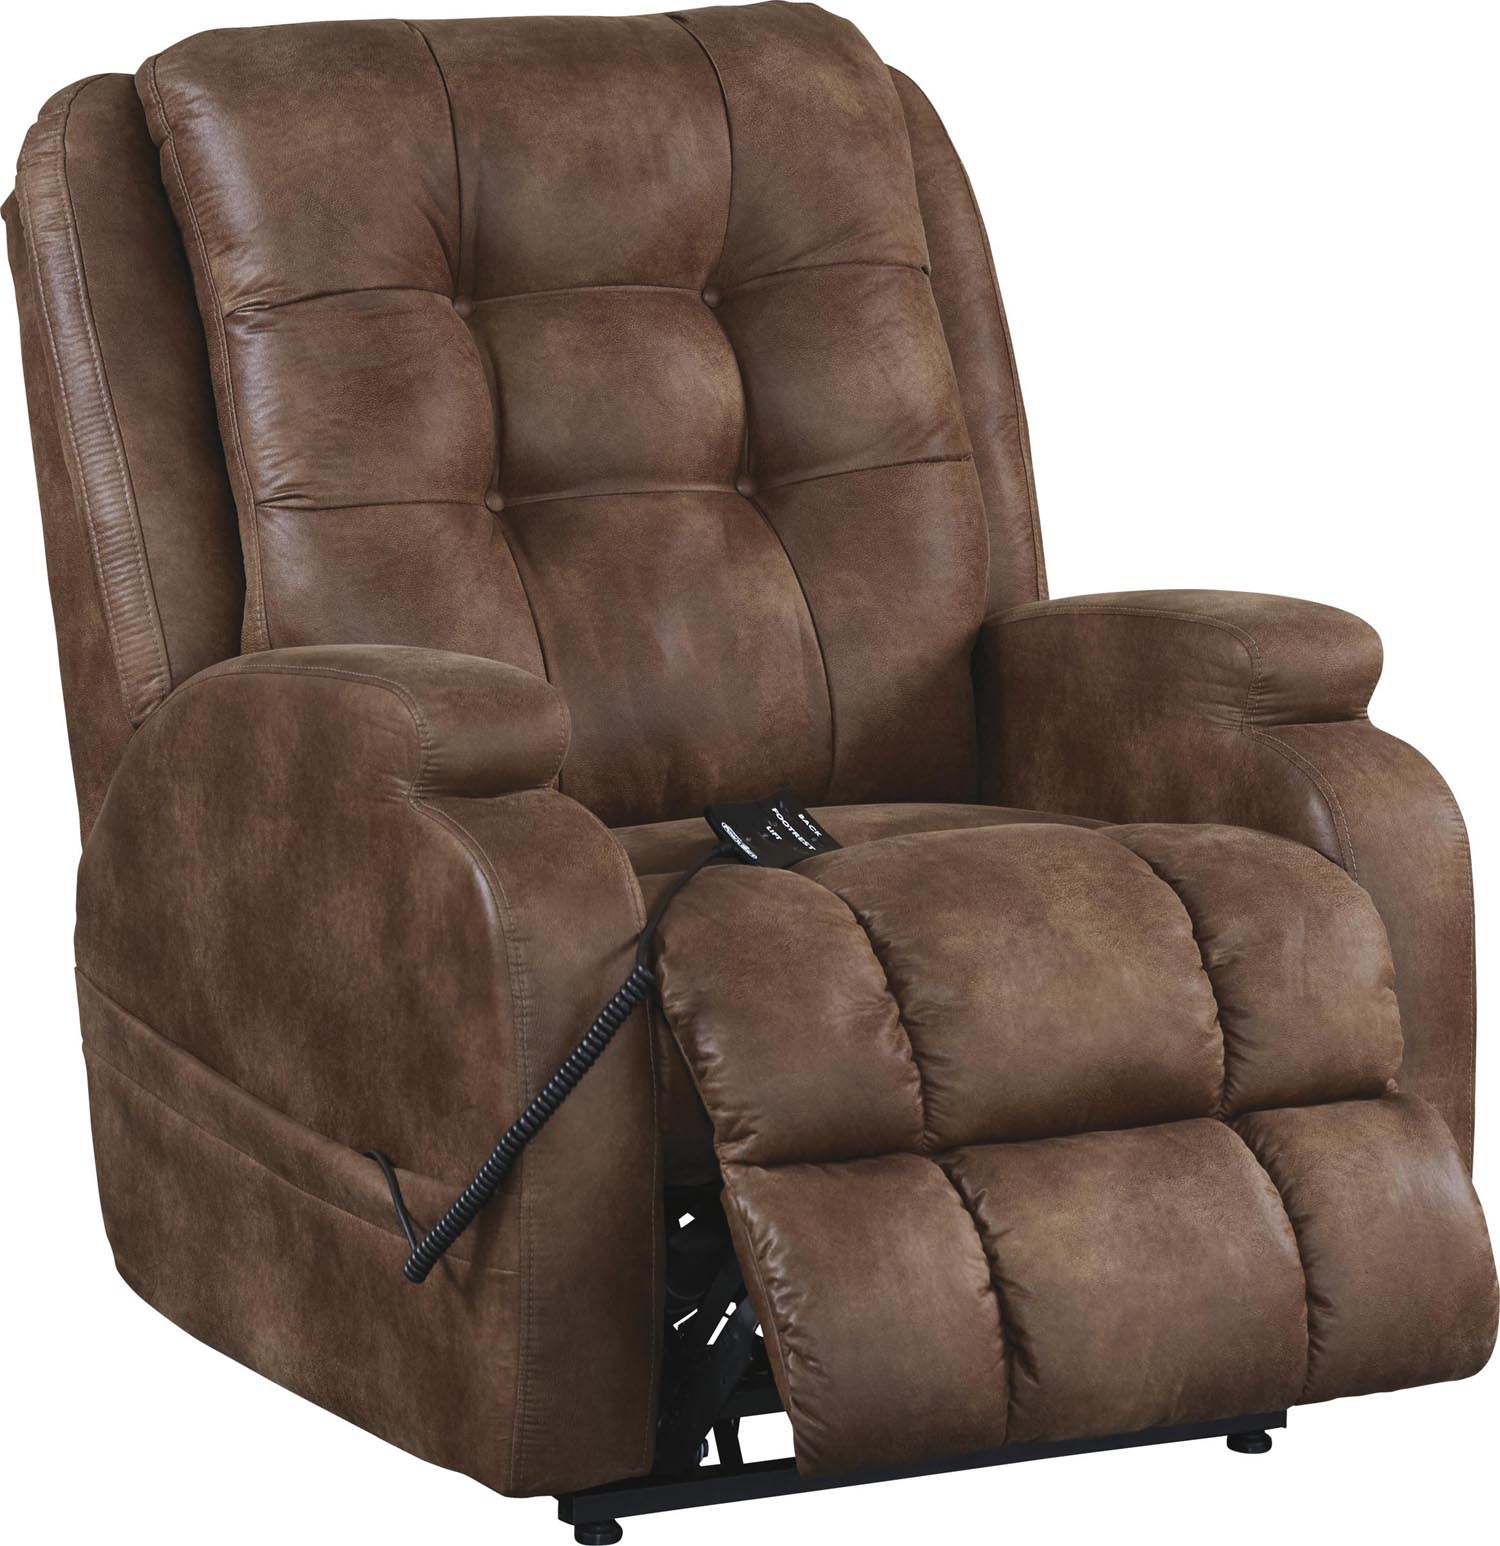 Catnapper Jenson Dual Motor Power Lift Chair Recliner 4855